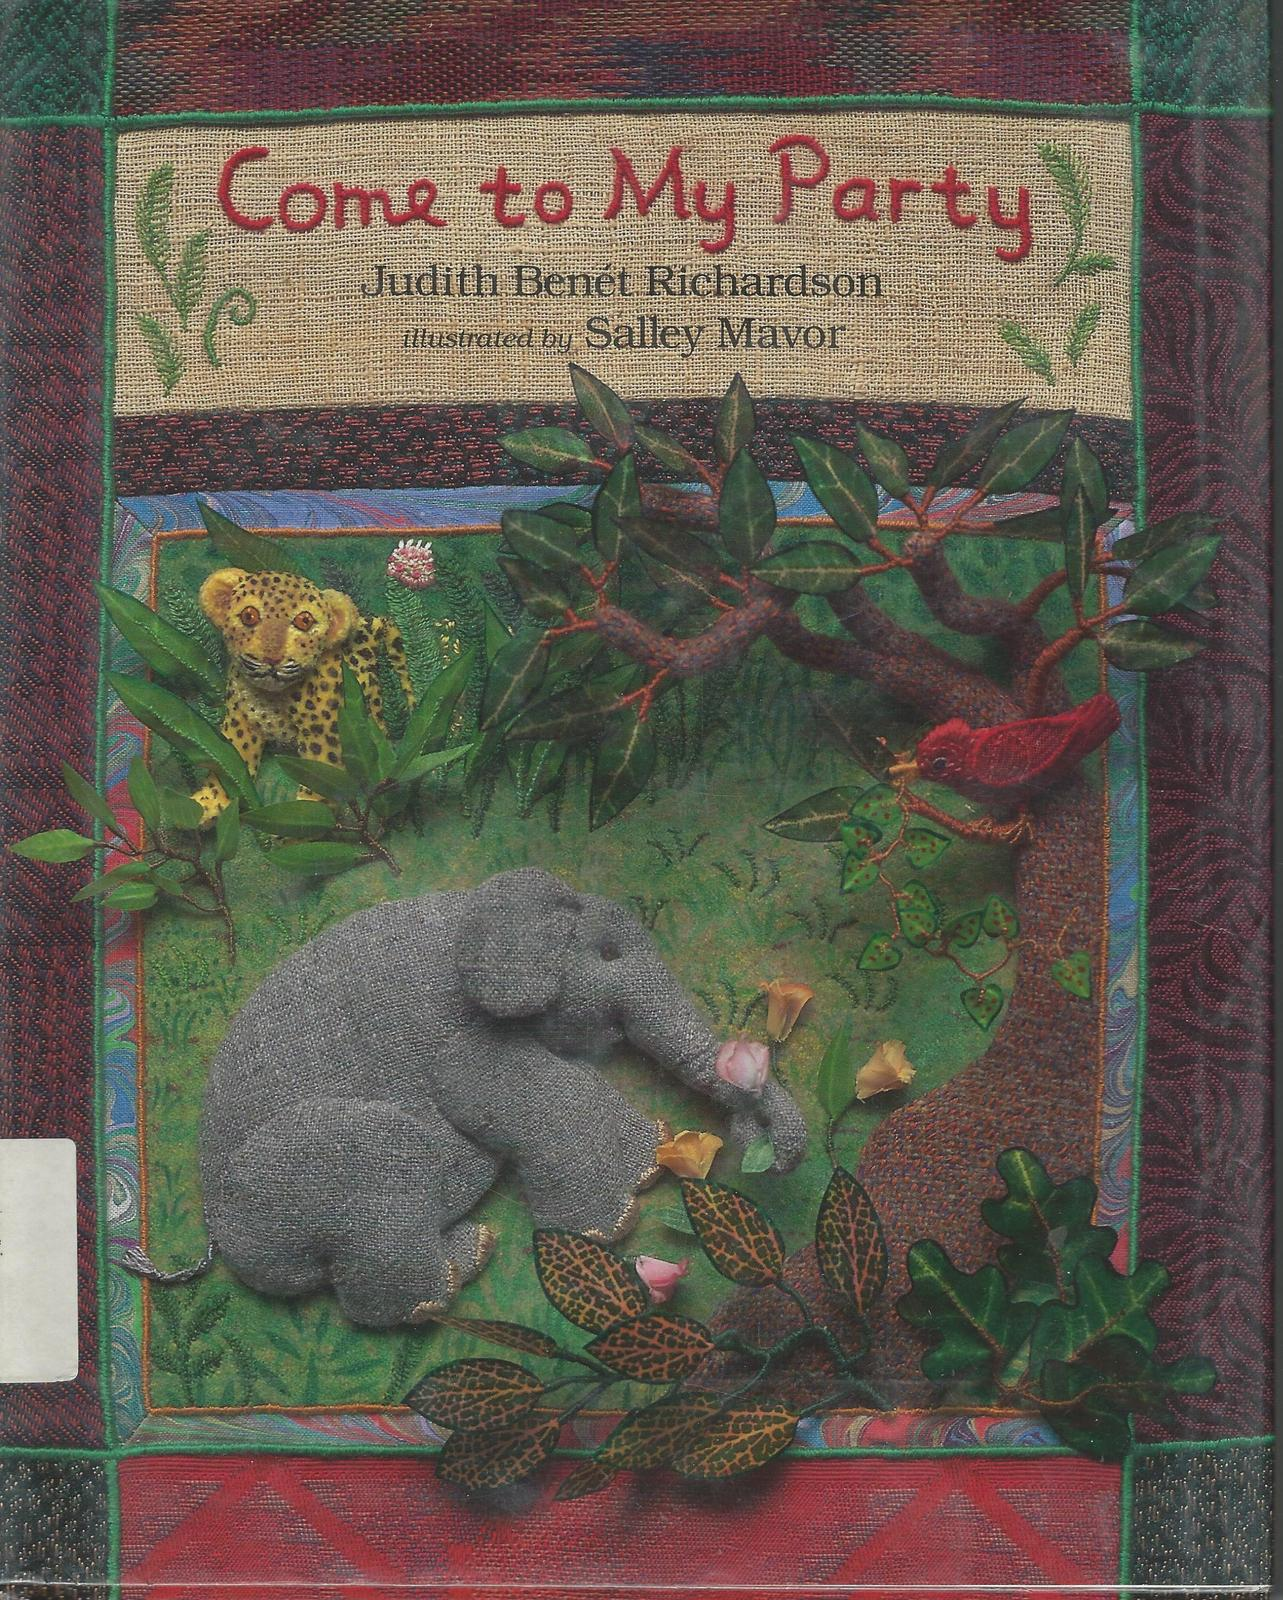 Come to My Party-Judith Benet Richardson-Birthday Party-Fabric Relief Illustrati